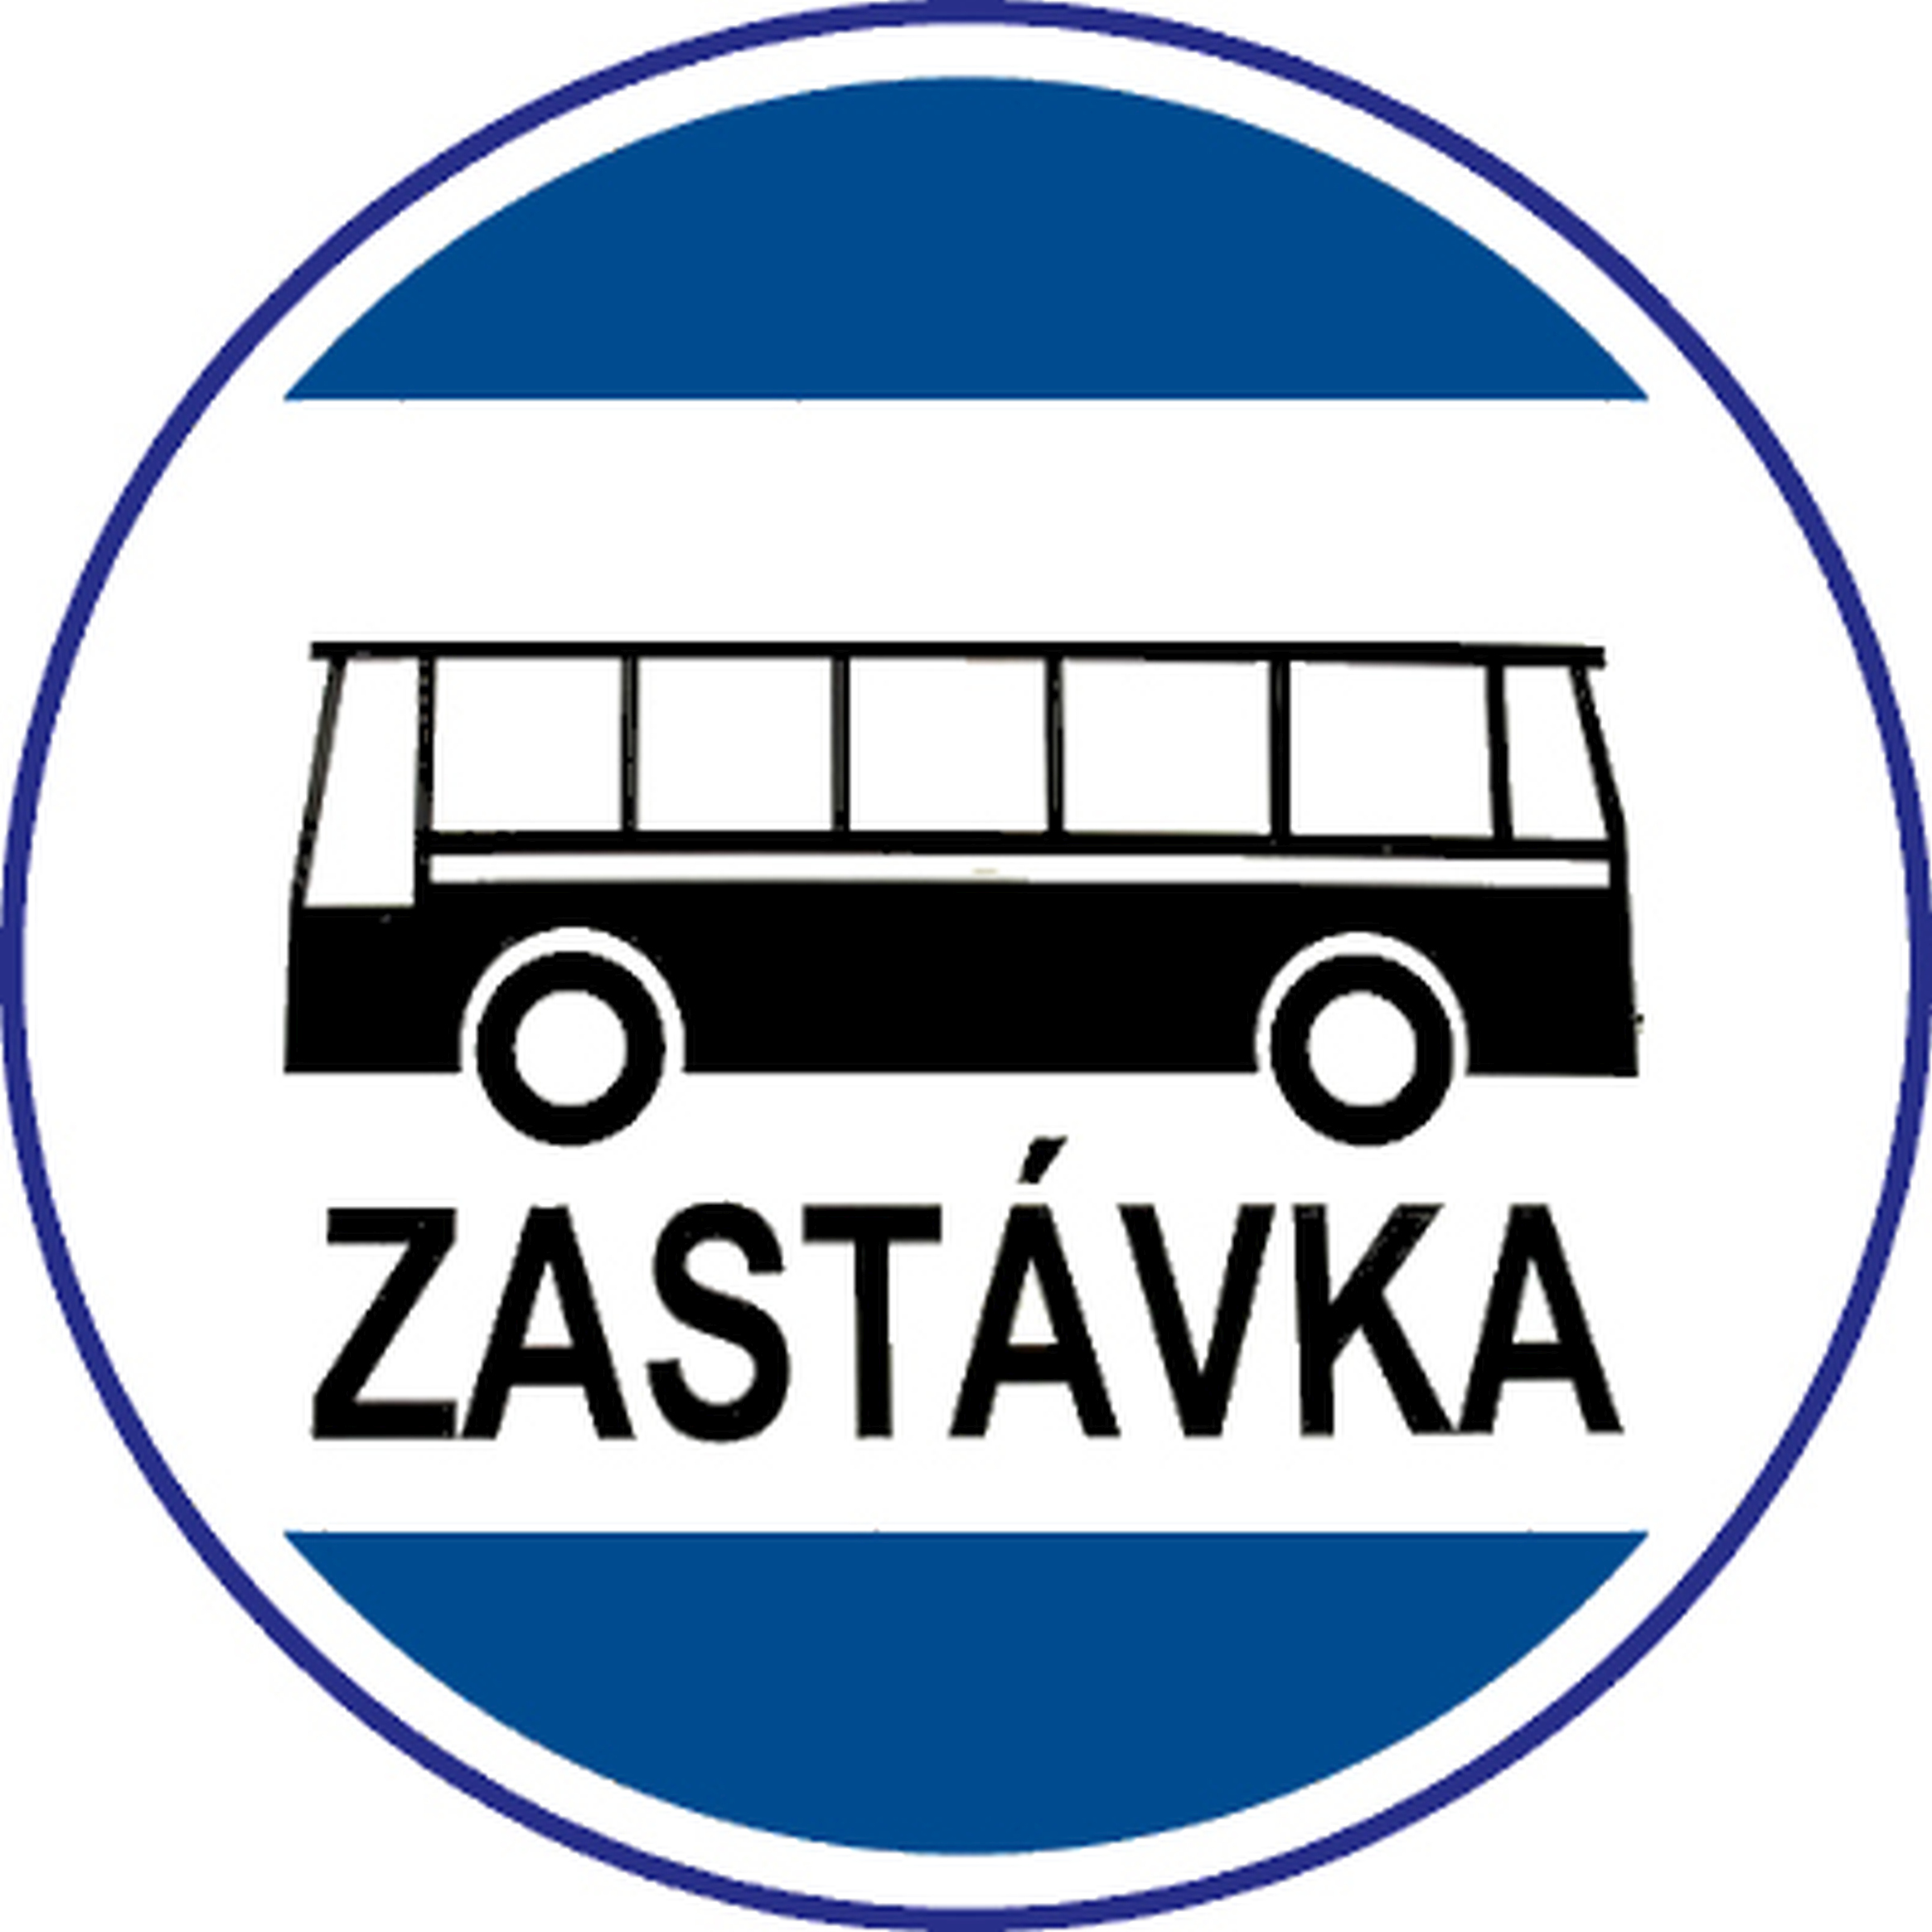 https://upload.wikimedia.org/wikipedia/commons/6/66/Zast%C3%A1vka_autobus.jpg